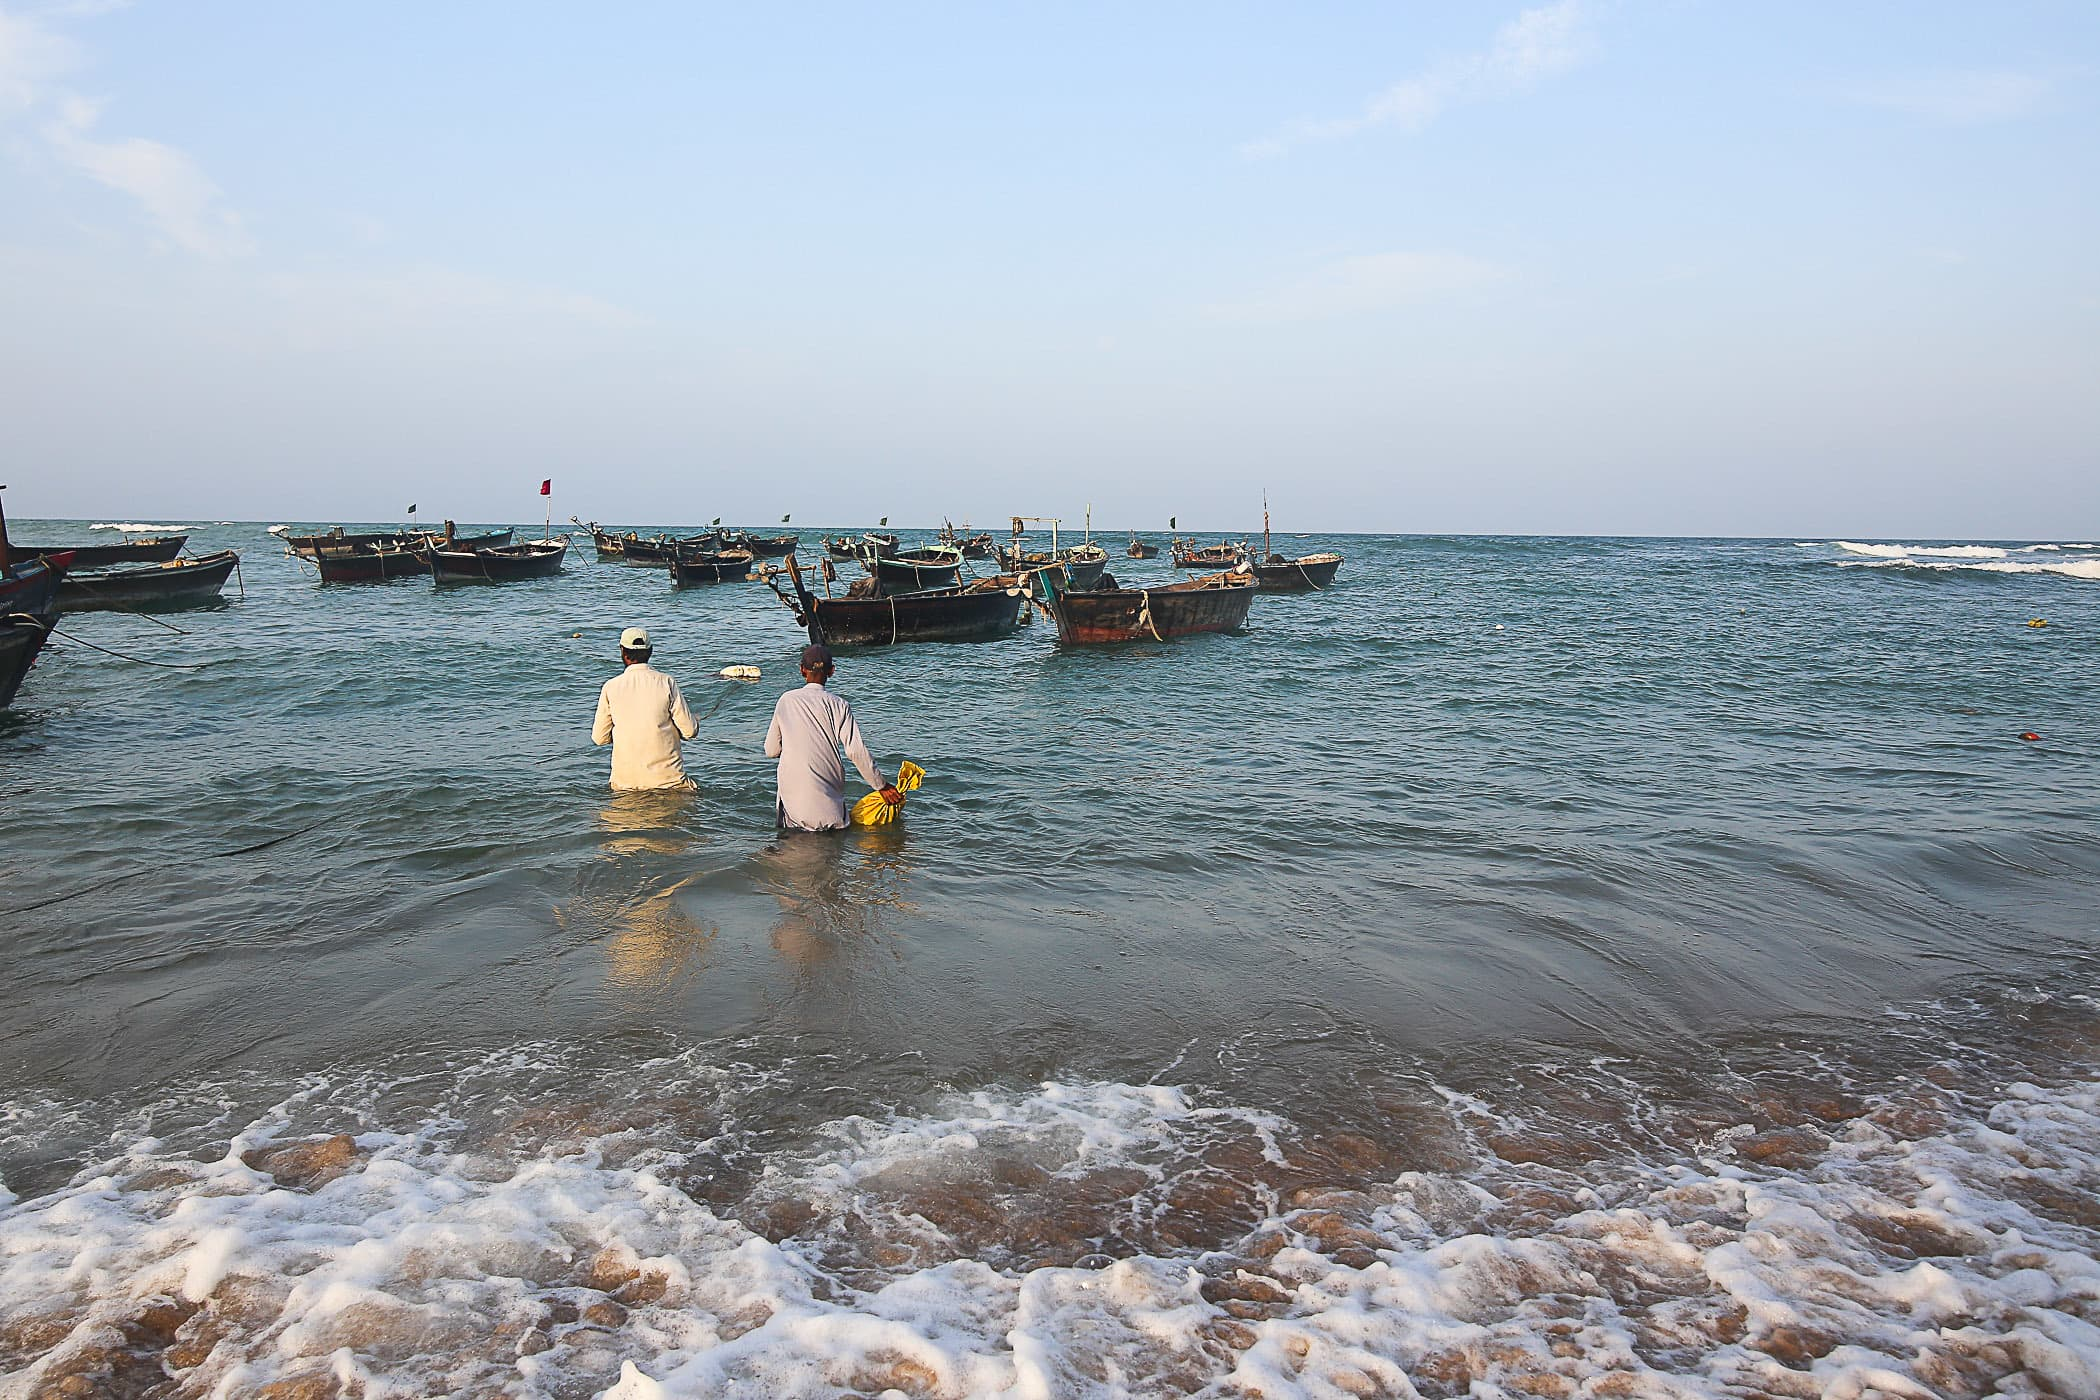 On the morning of the second day Chacha Majeed and Qasim wade into the water to get onto their boat.